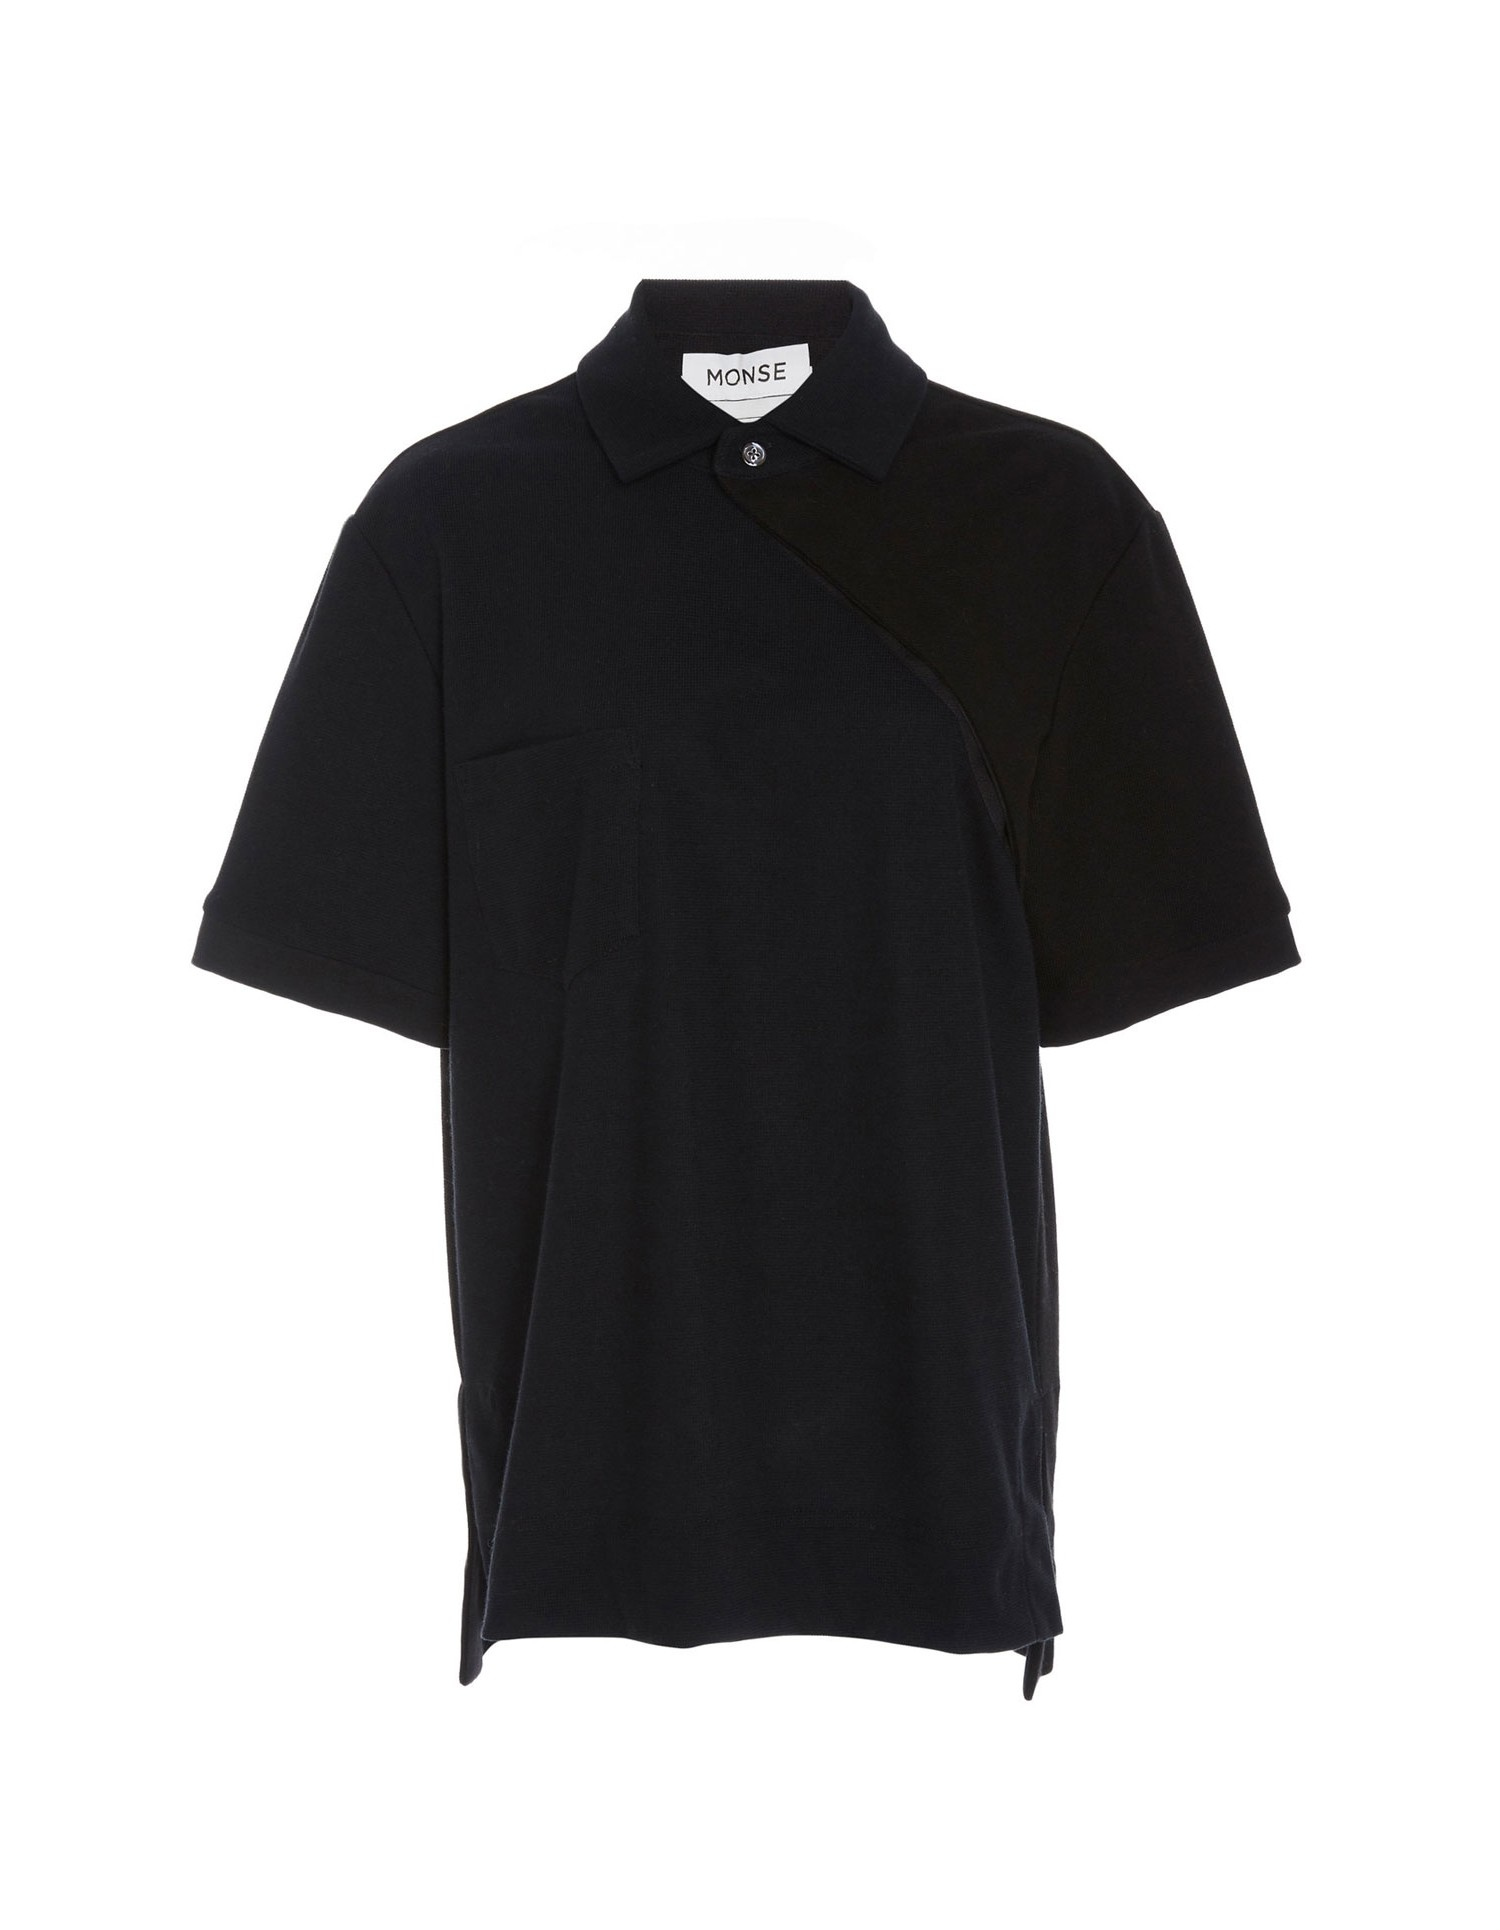 Monse Unisex Two-Tone Twisted Polo on Male Model Front